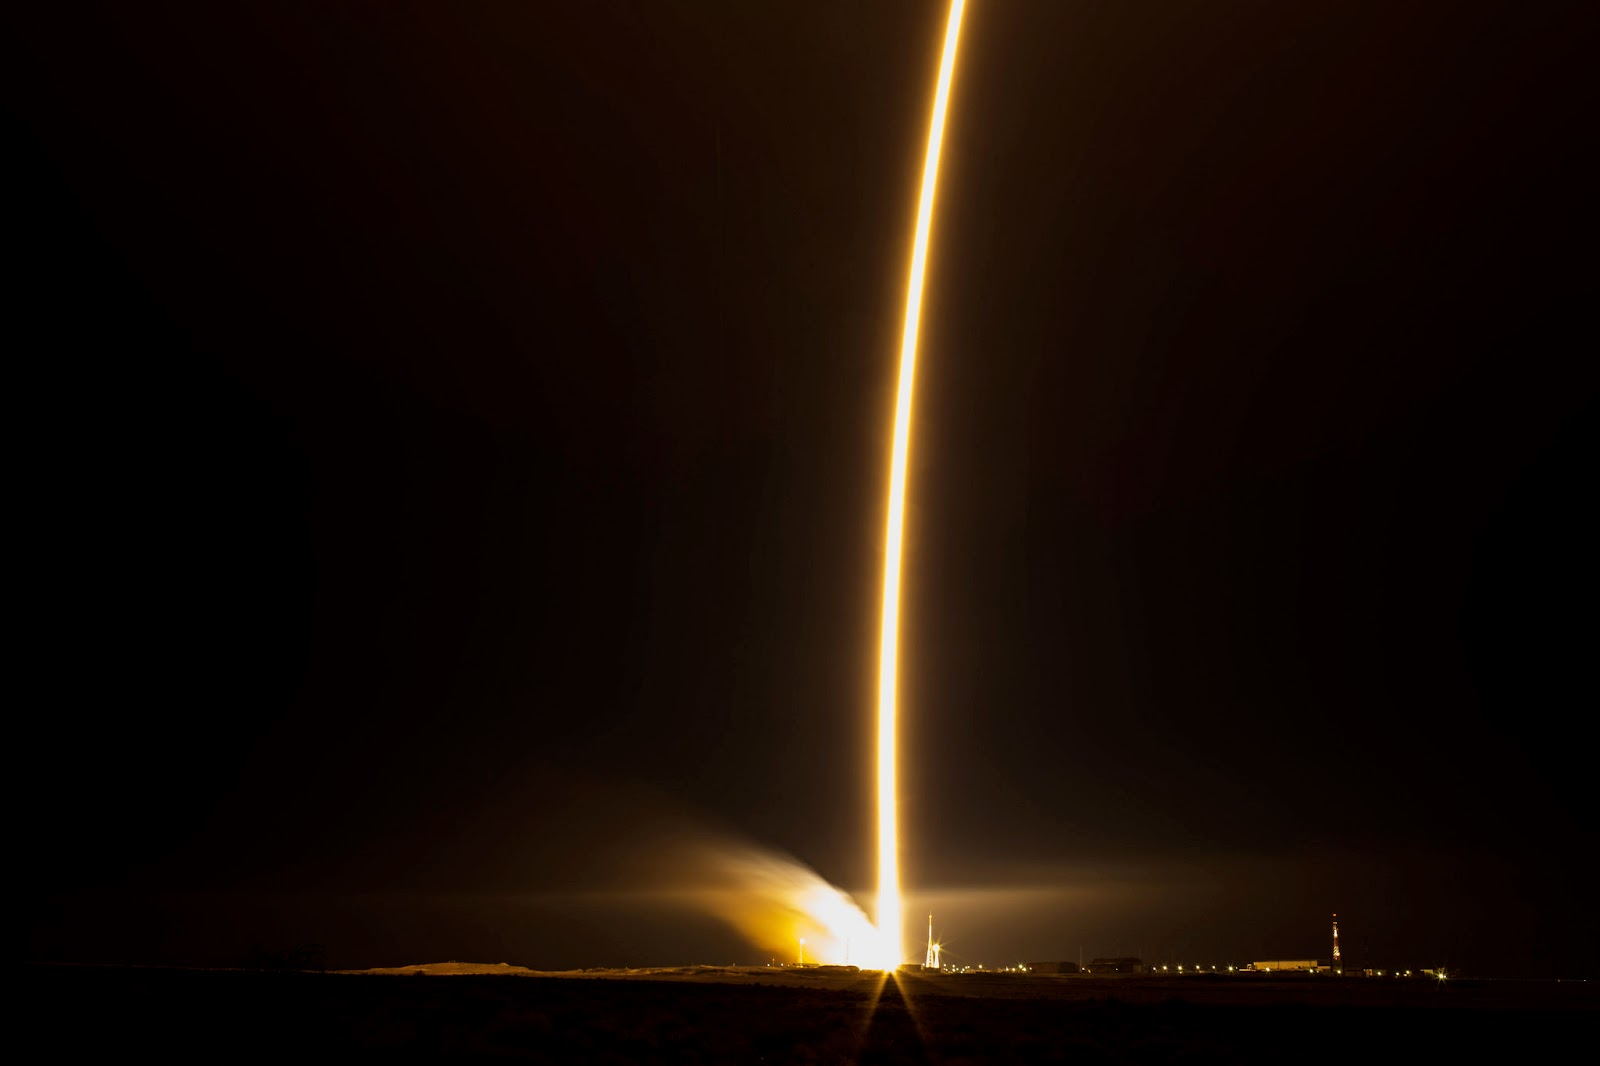 The Soyuz TMA-15M rocket launches from the Baikonur Cosmodrome in Kazakhstan on Monday, Nov. 24, 2014 as seen in this long exposure carrying Expedition 42 Soyuz Commander Anton Shkaplerov of the Russian Federal Space Agency (Roscosmos), Flight Engineer Terry Virts of NASA, and Flight Engineer Samantha Cristoforetti of the European Space Agency (ESA) into orbit to begin their five and a half month mission on the International Space Station. (Photo Credit: NASA/Aubrey Gemignani)